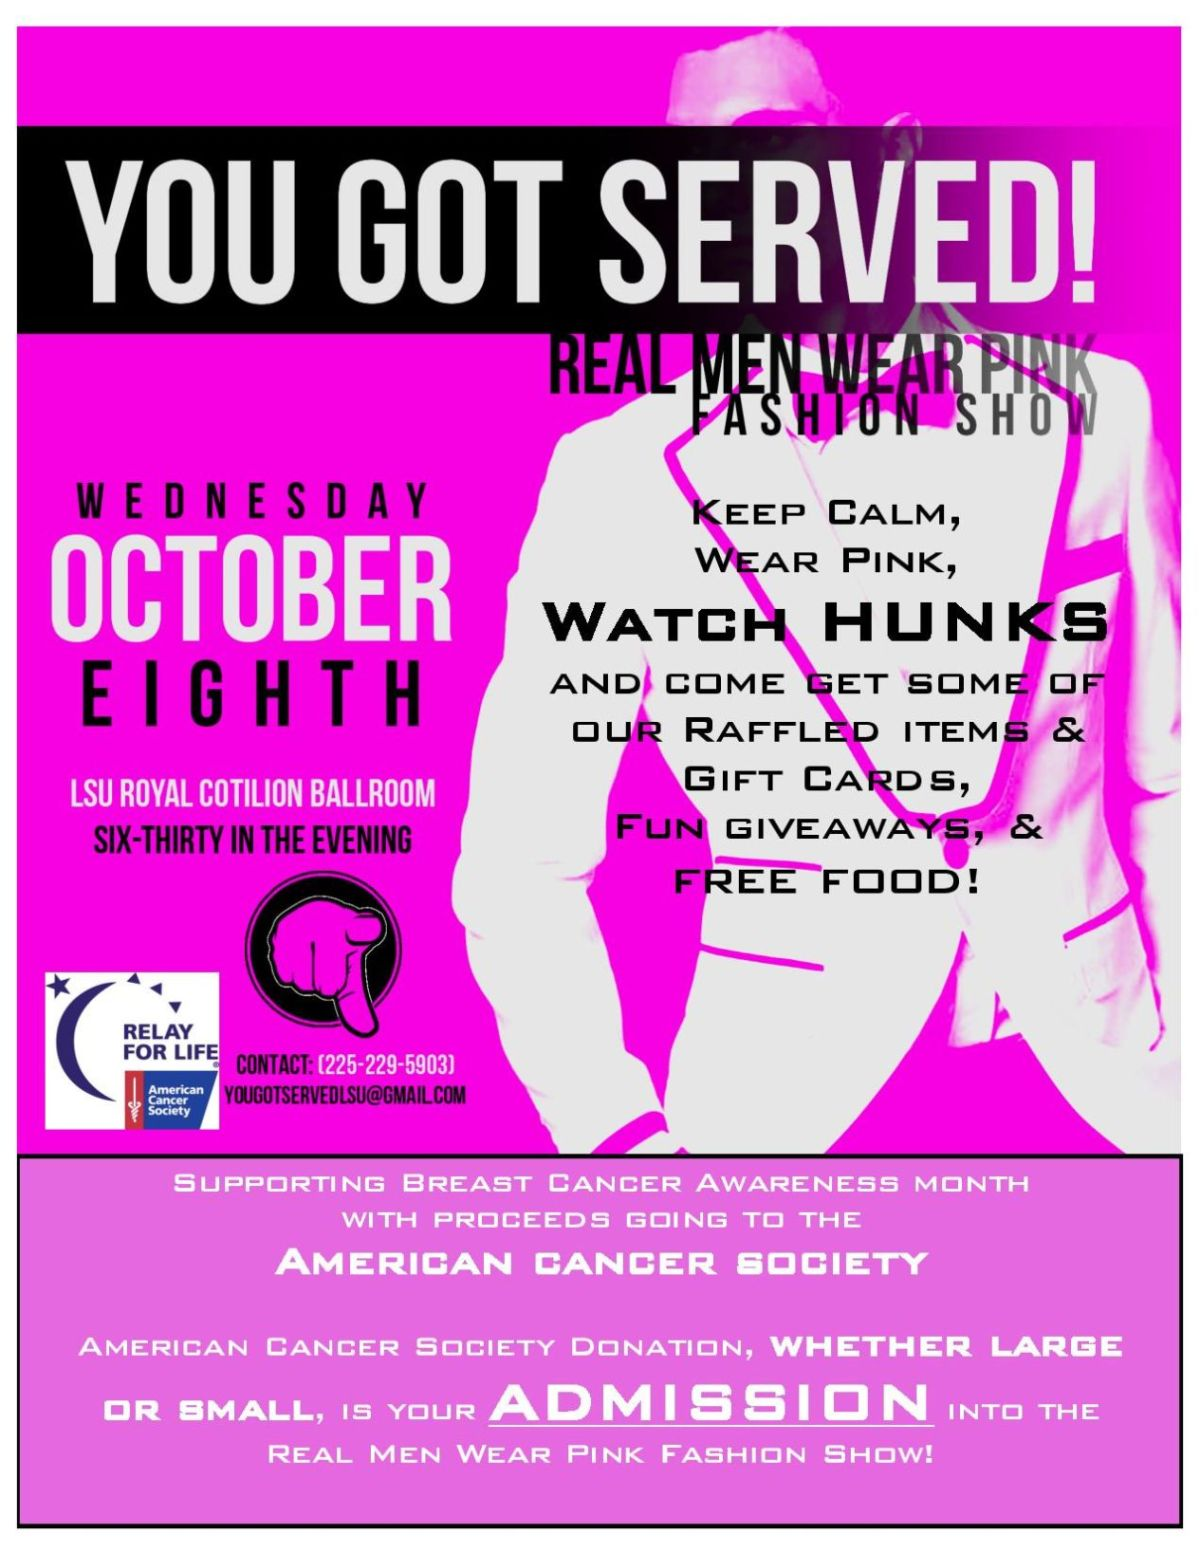 Real Men Wear Pink Fashion Show brings breast cancer ...